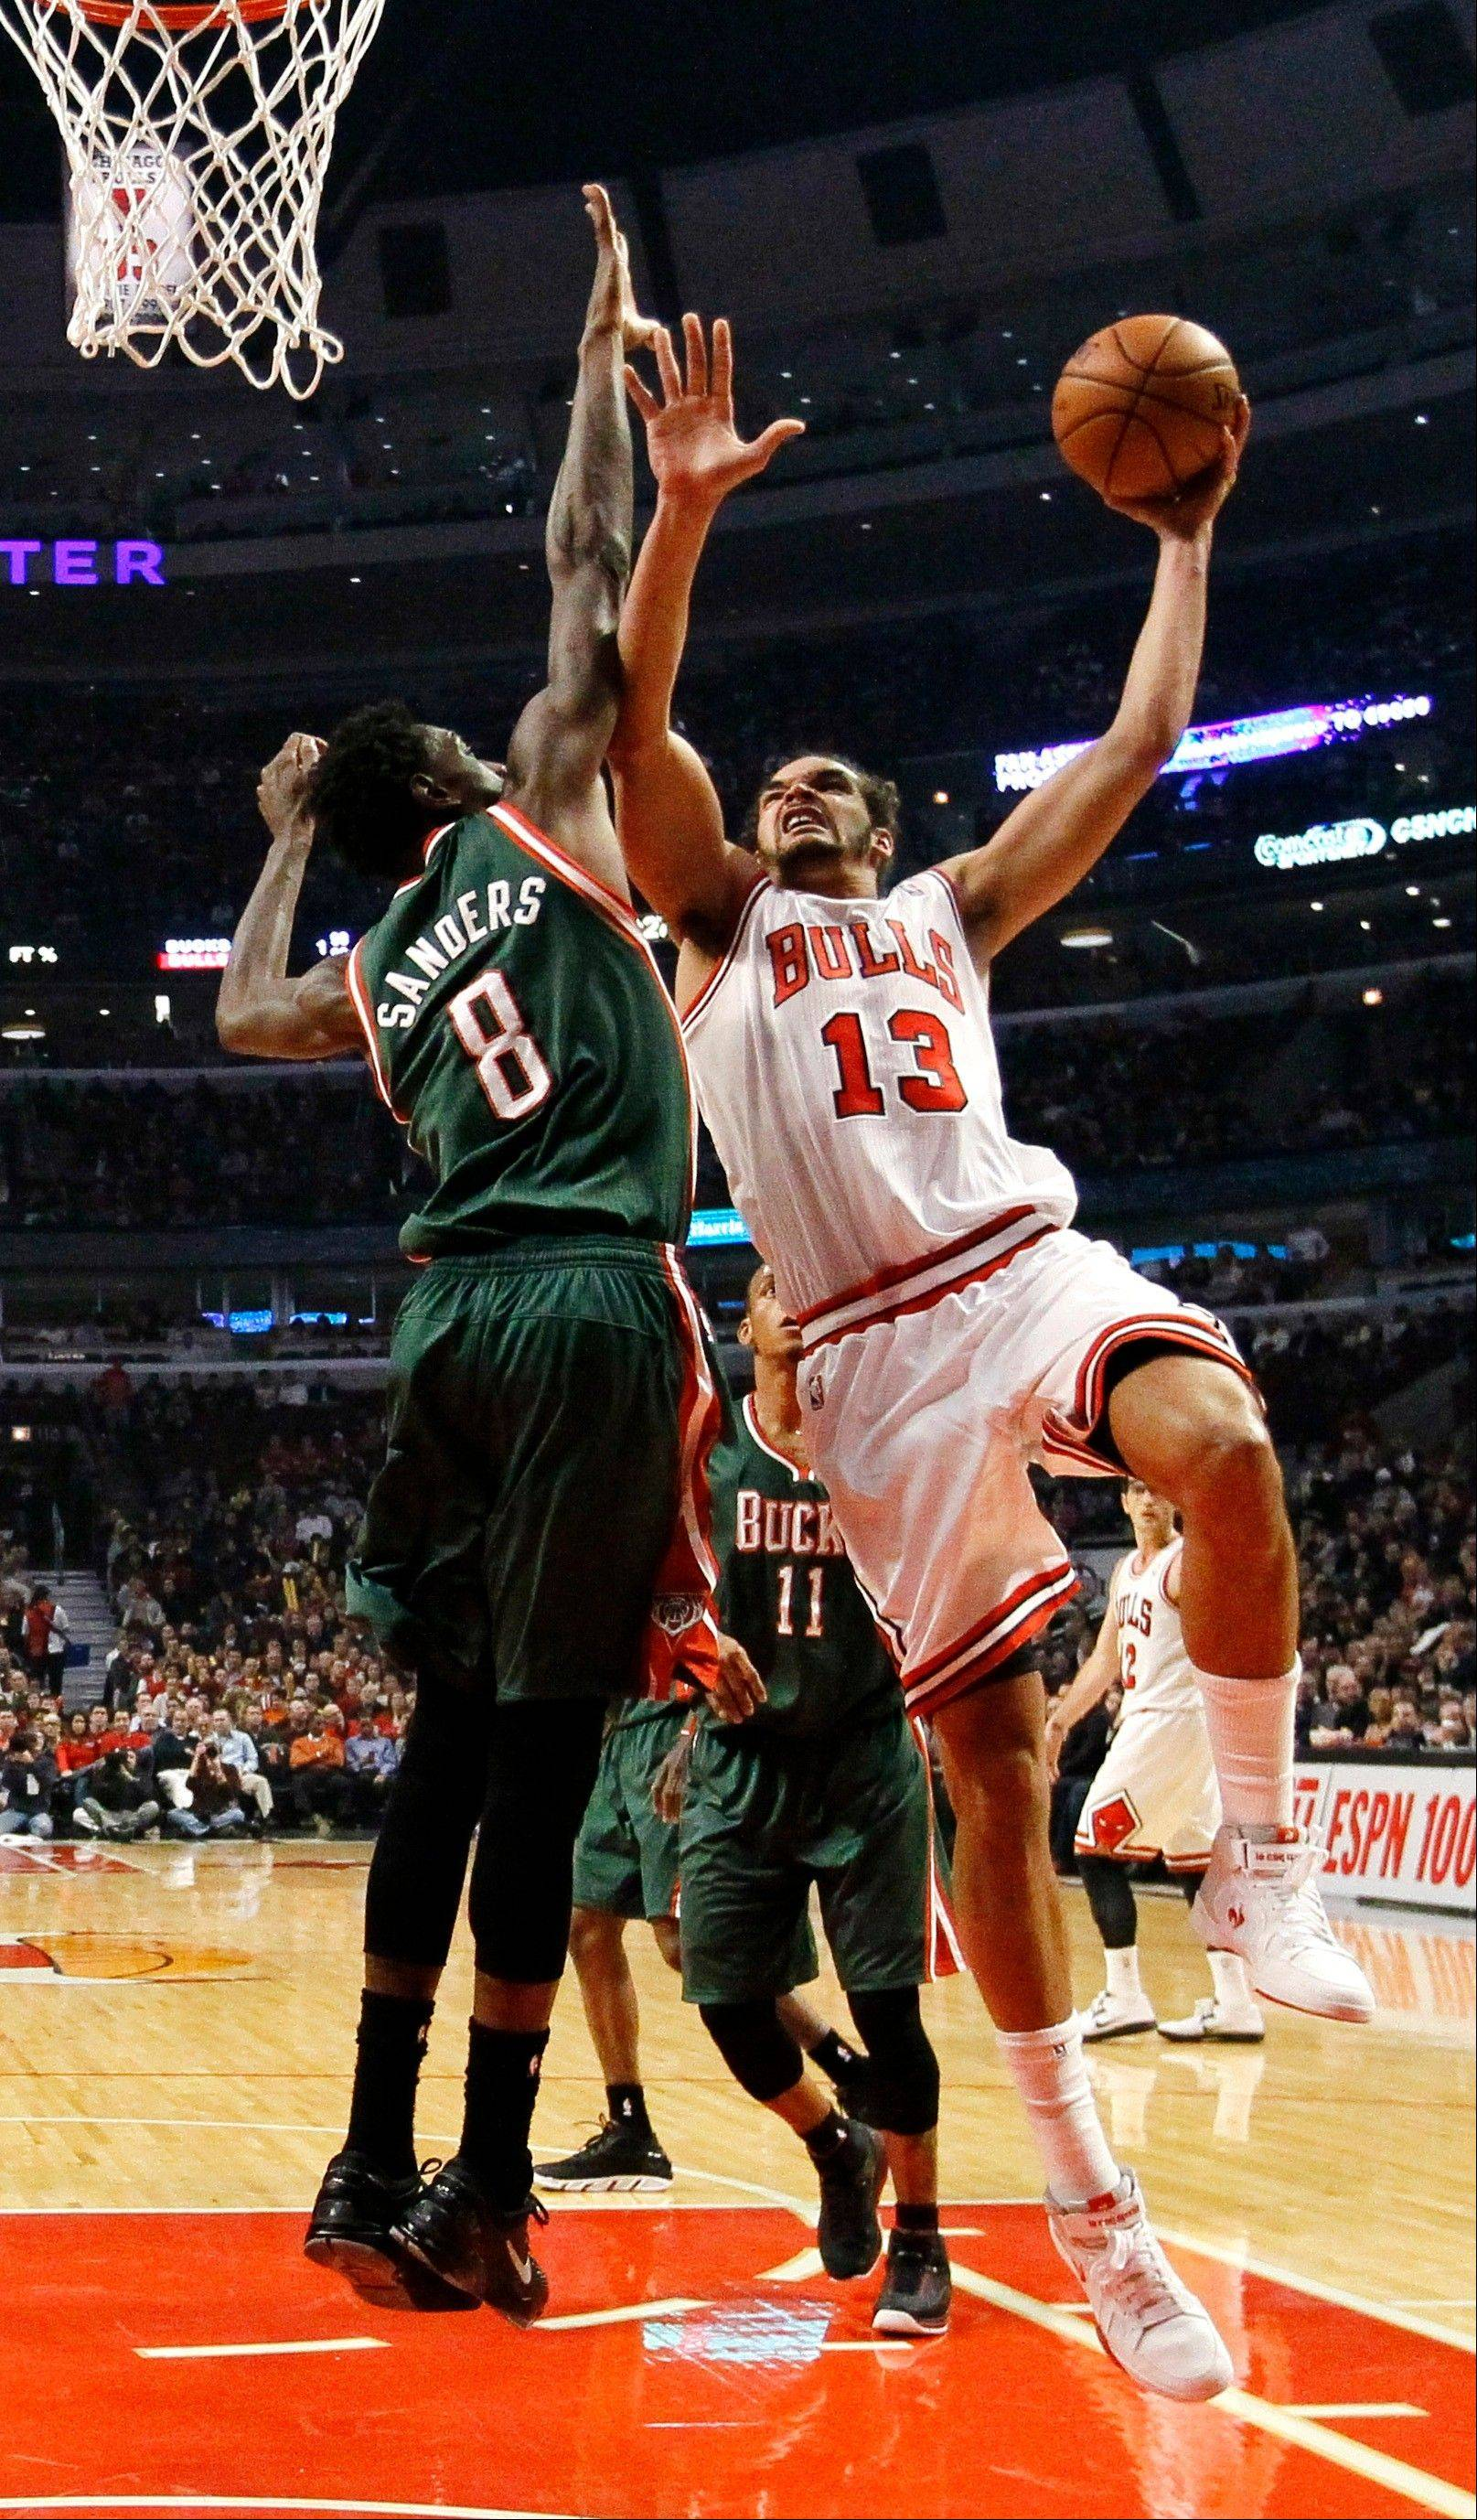 The Bulls' Joakim Noah shoots over Bucks center Larry Sanders in the first half Monday at the United Center. The Bucks rallied from a big deficit to win 93-92.